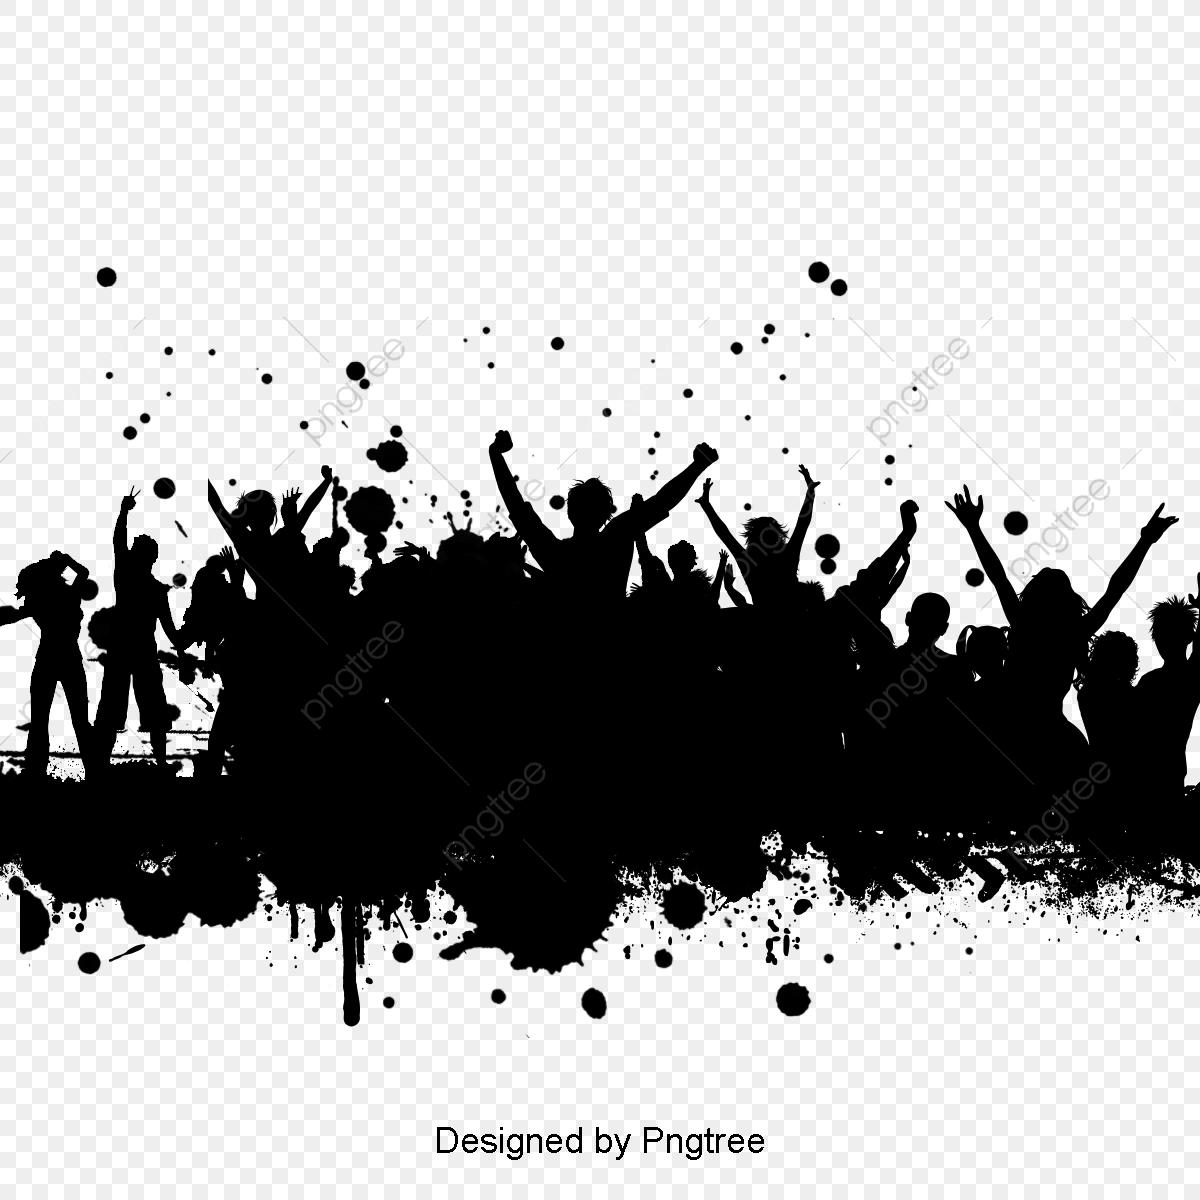 Dancing Crowd Silhouette Material Design Simple Silhouette Crowd Png Transparent Clipart Image And Psd File For Free Download Pikbest has 319 crowd silhouette design images templates for free. https pngtree com freepng dancing crowd silhouette material design 3631049 html